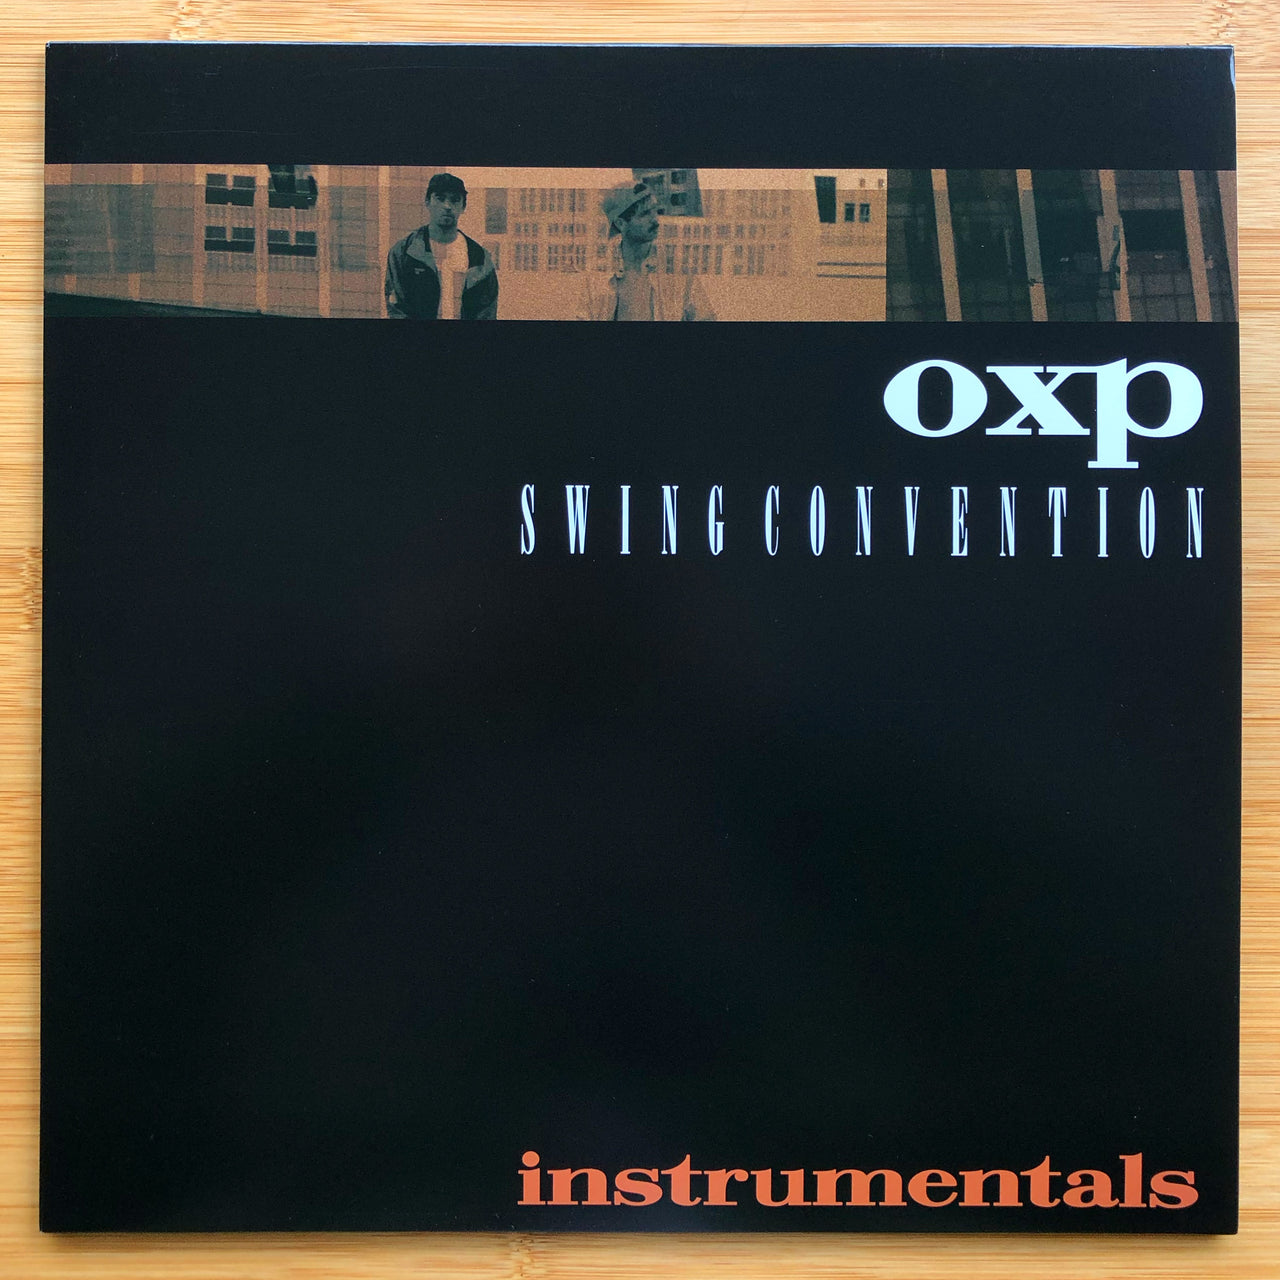 OXP - Swing Convention (Instrumentals)